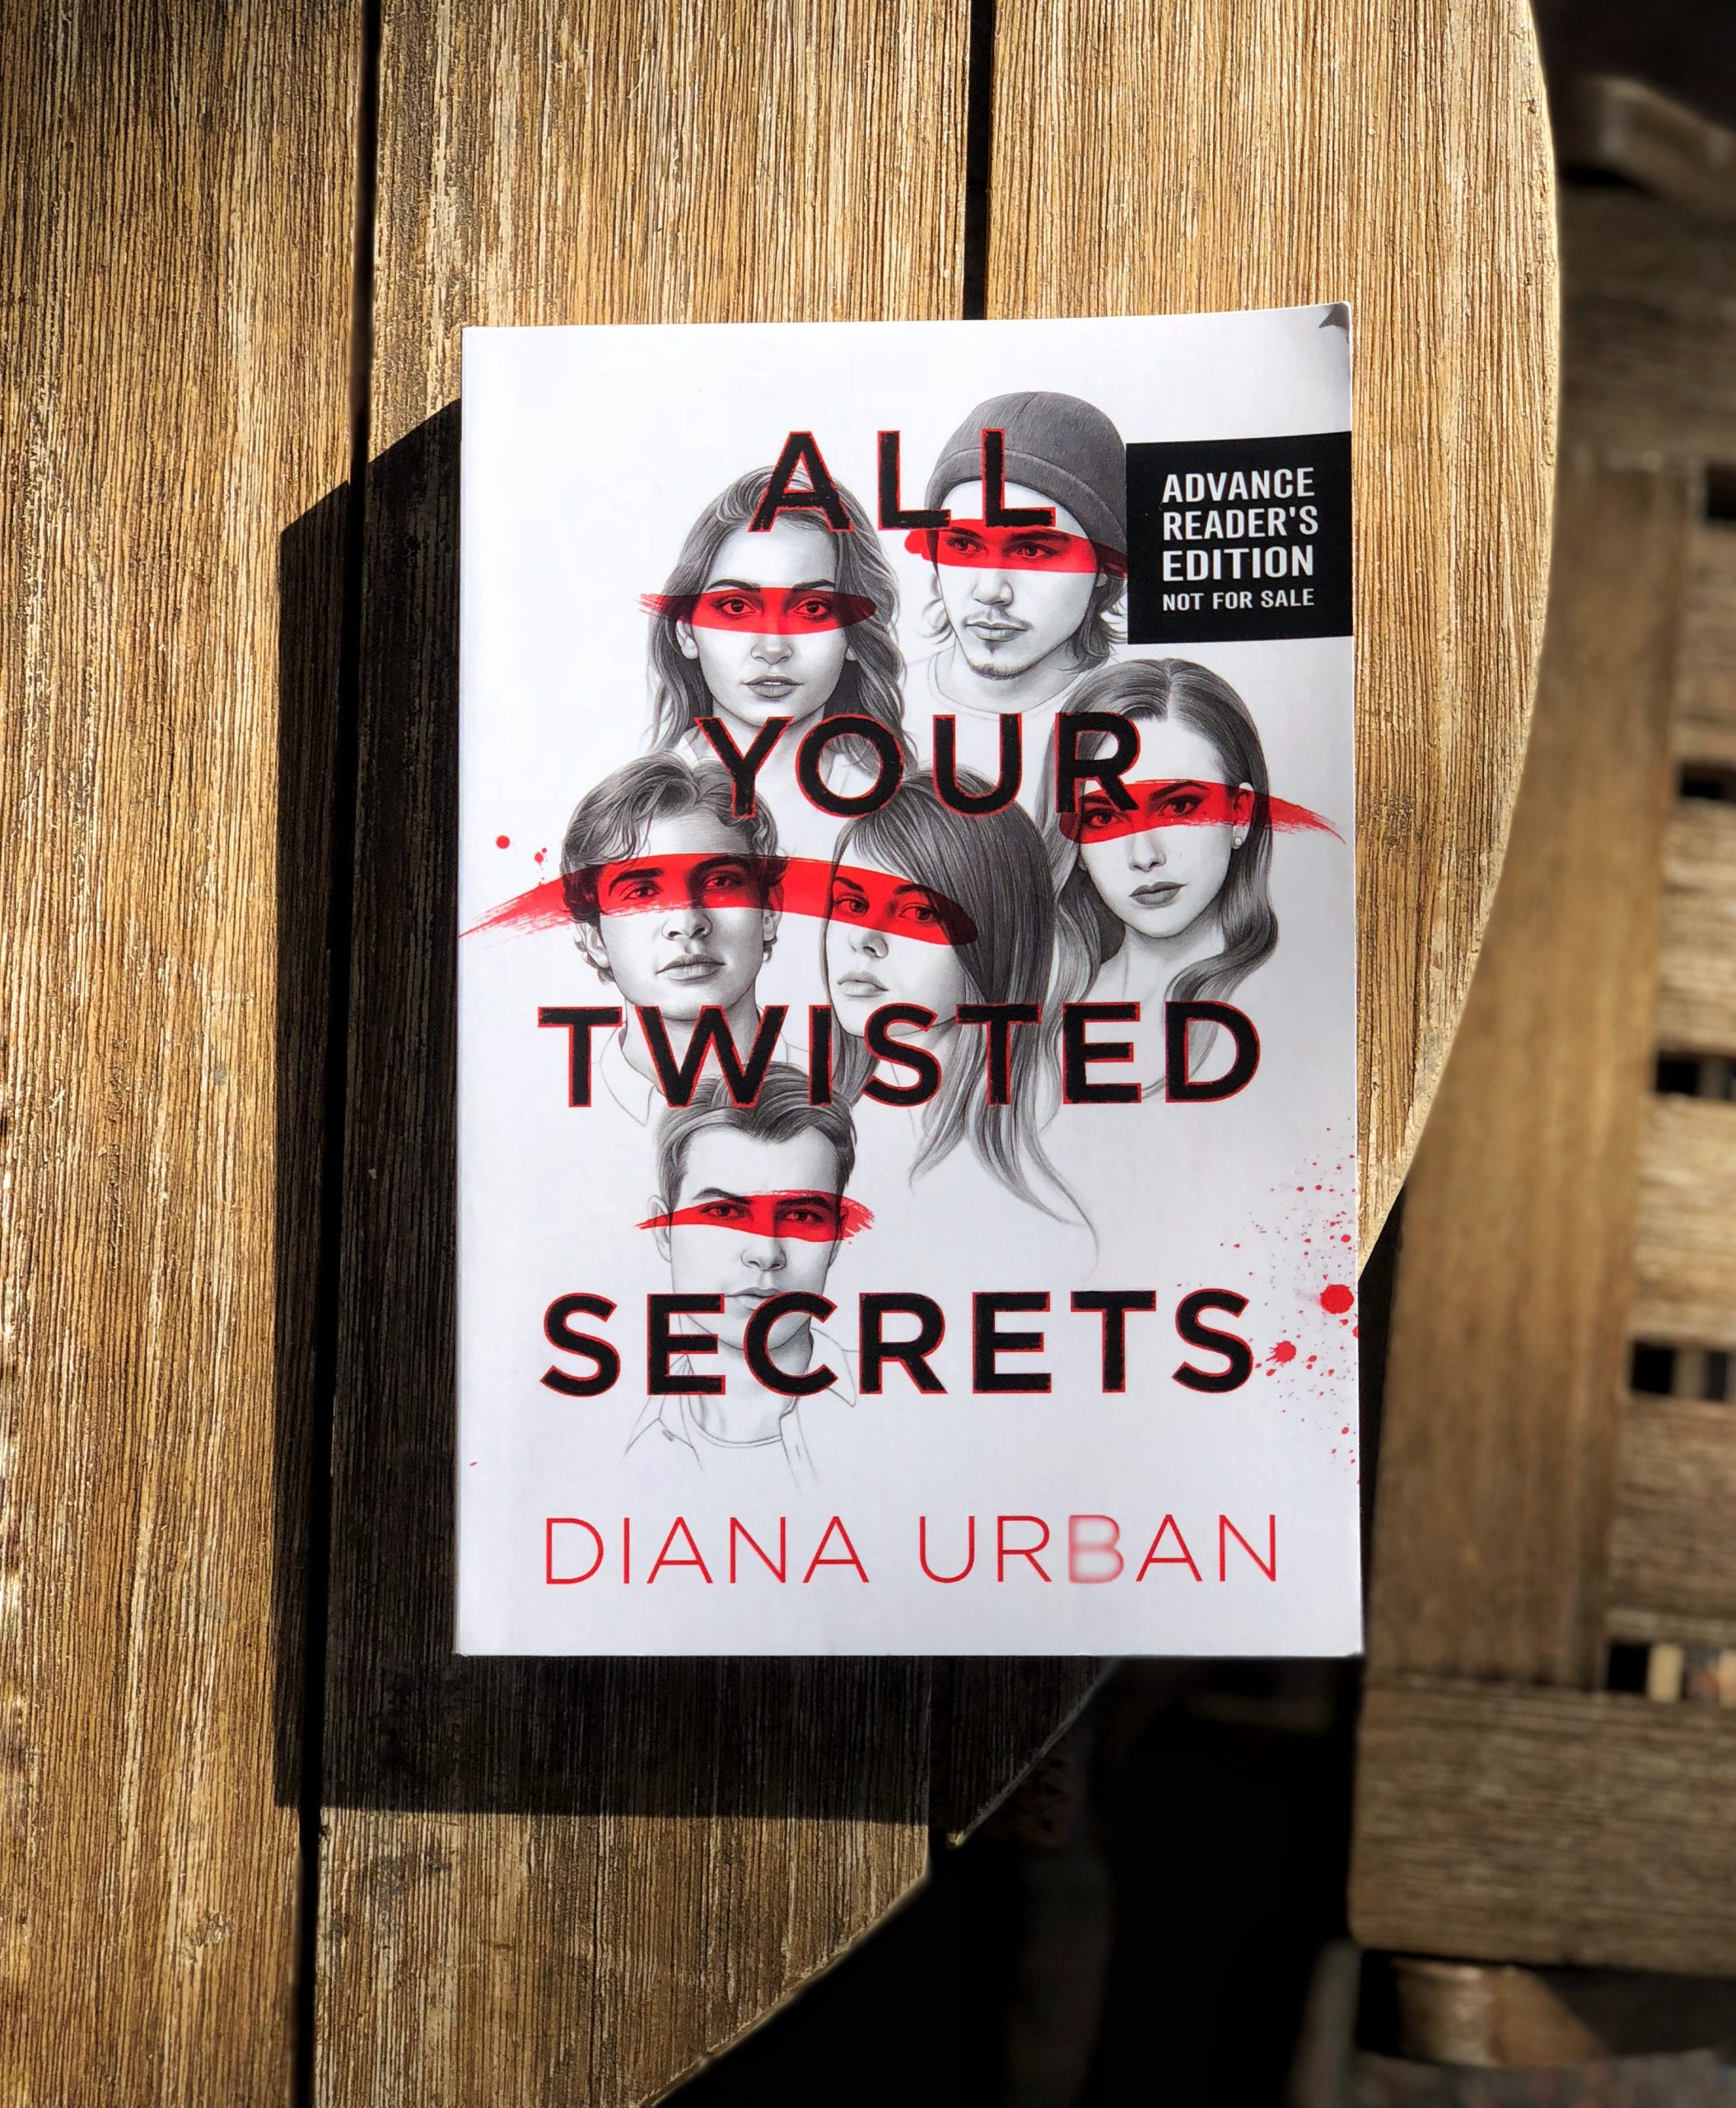 All Your Twisted Secrets on a Wooden Table